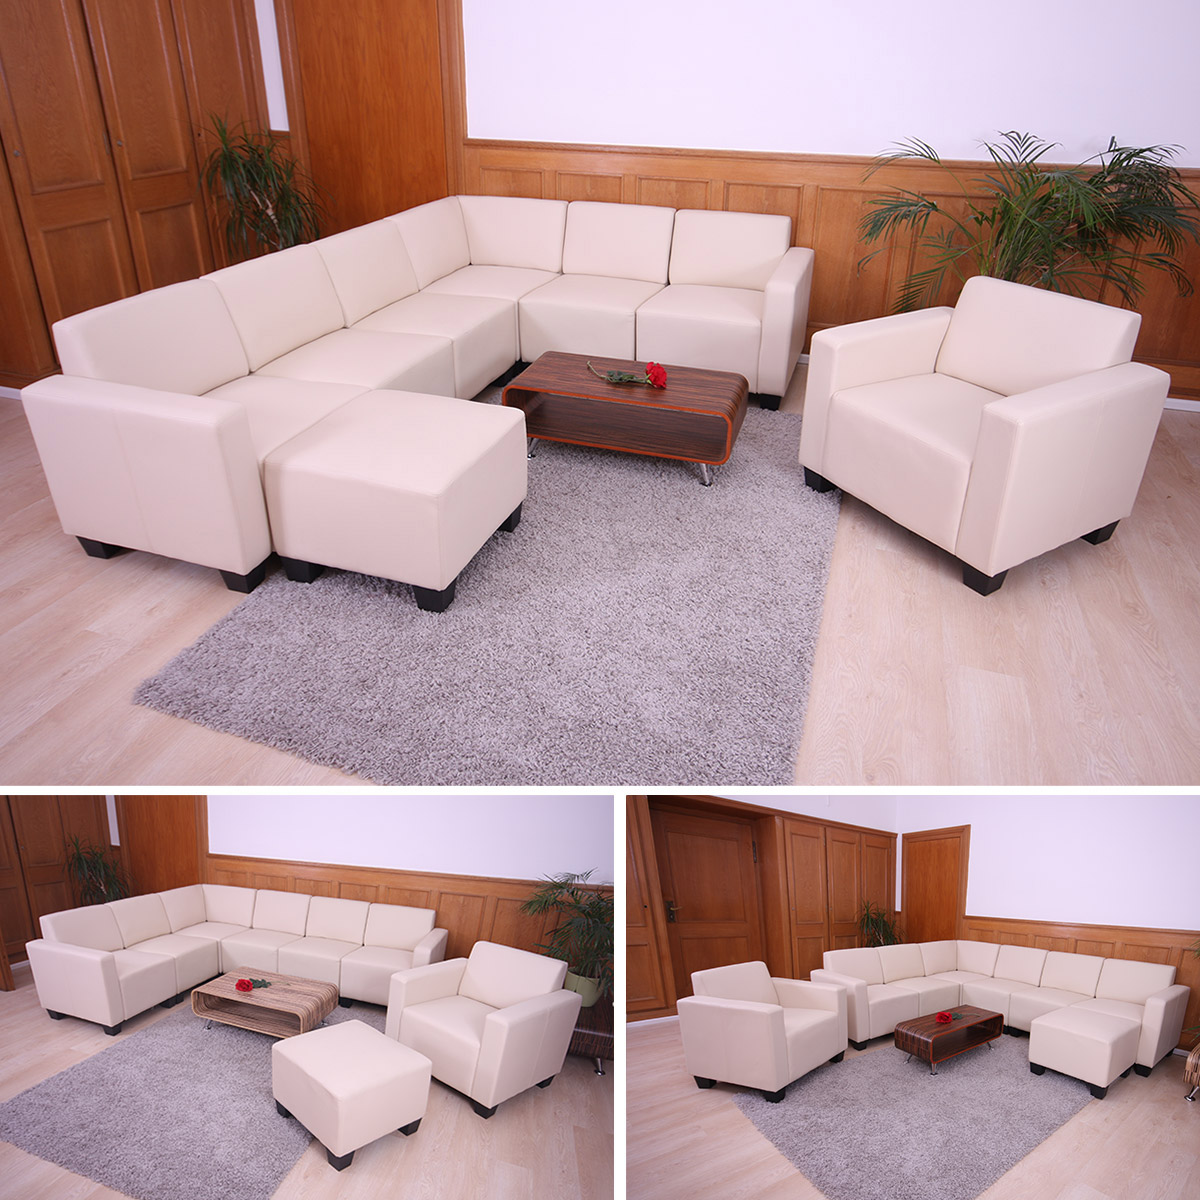 modular sofa system couch garnitur lyon 6 2 kunstleder creme. Black Bedroom Furniture Sets. Home Design Ideas